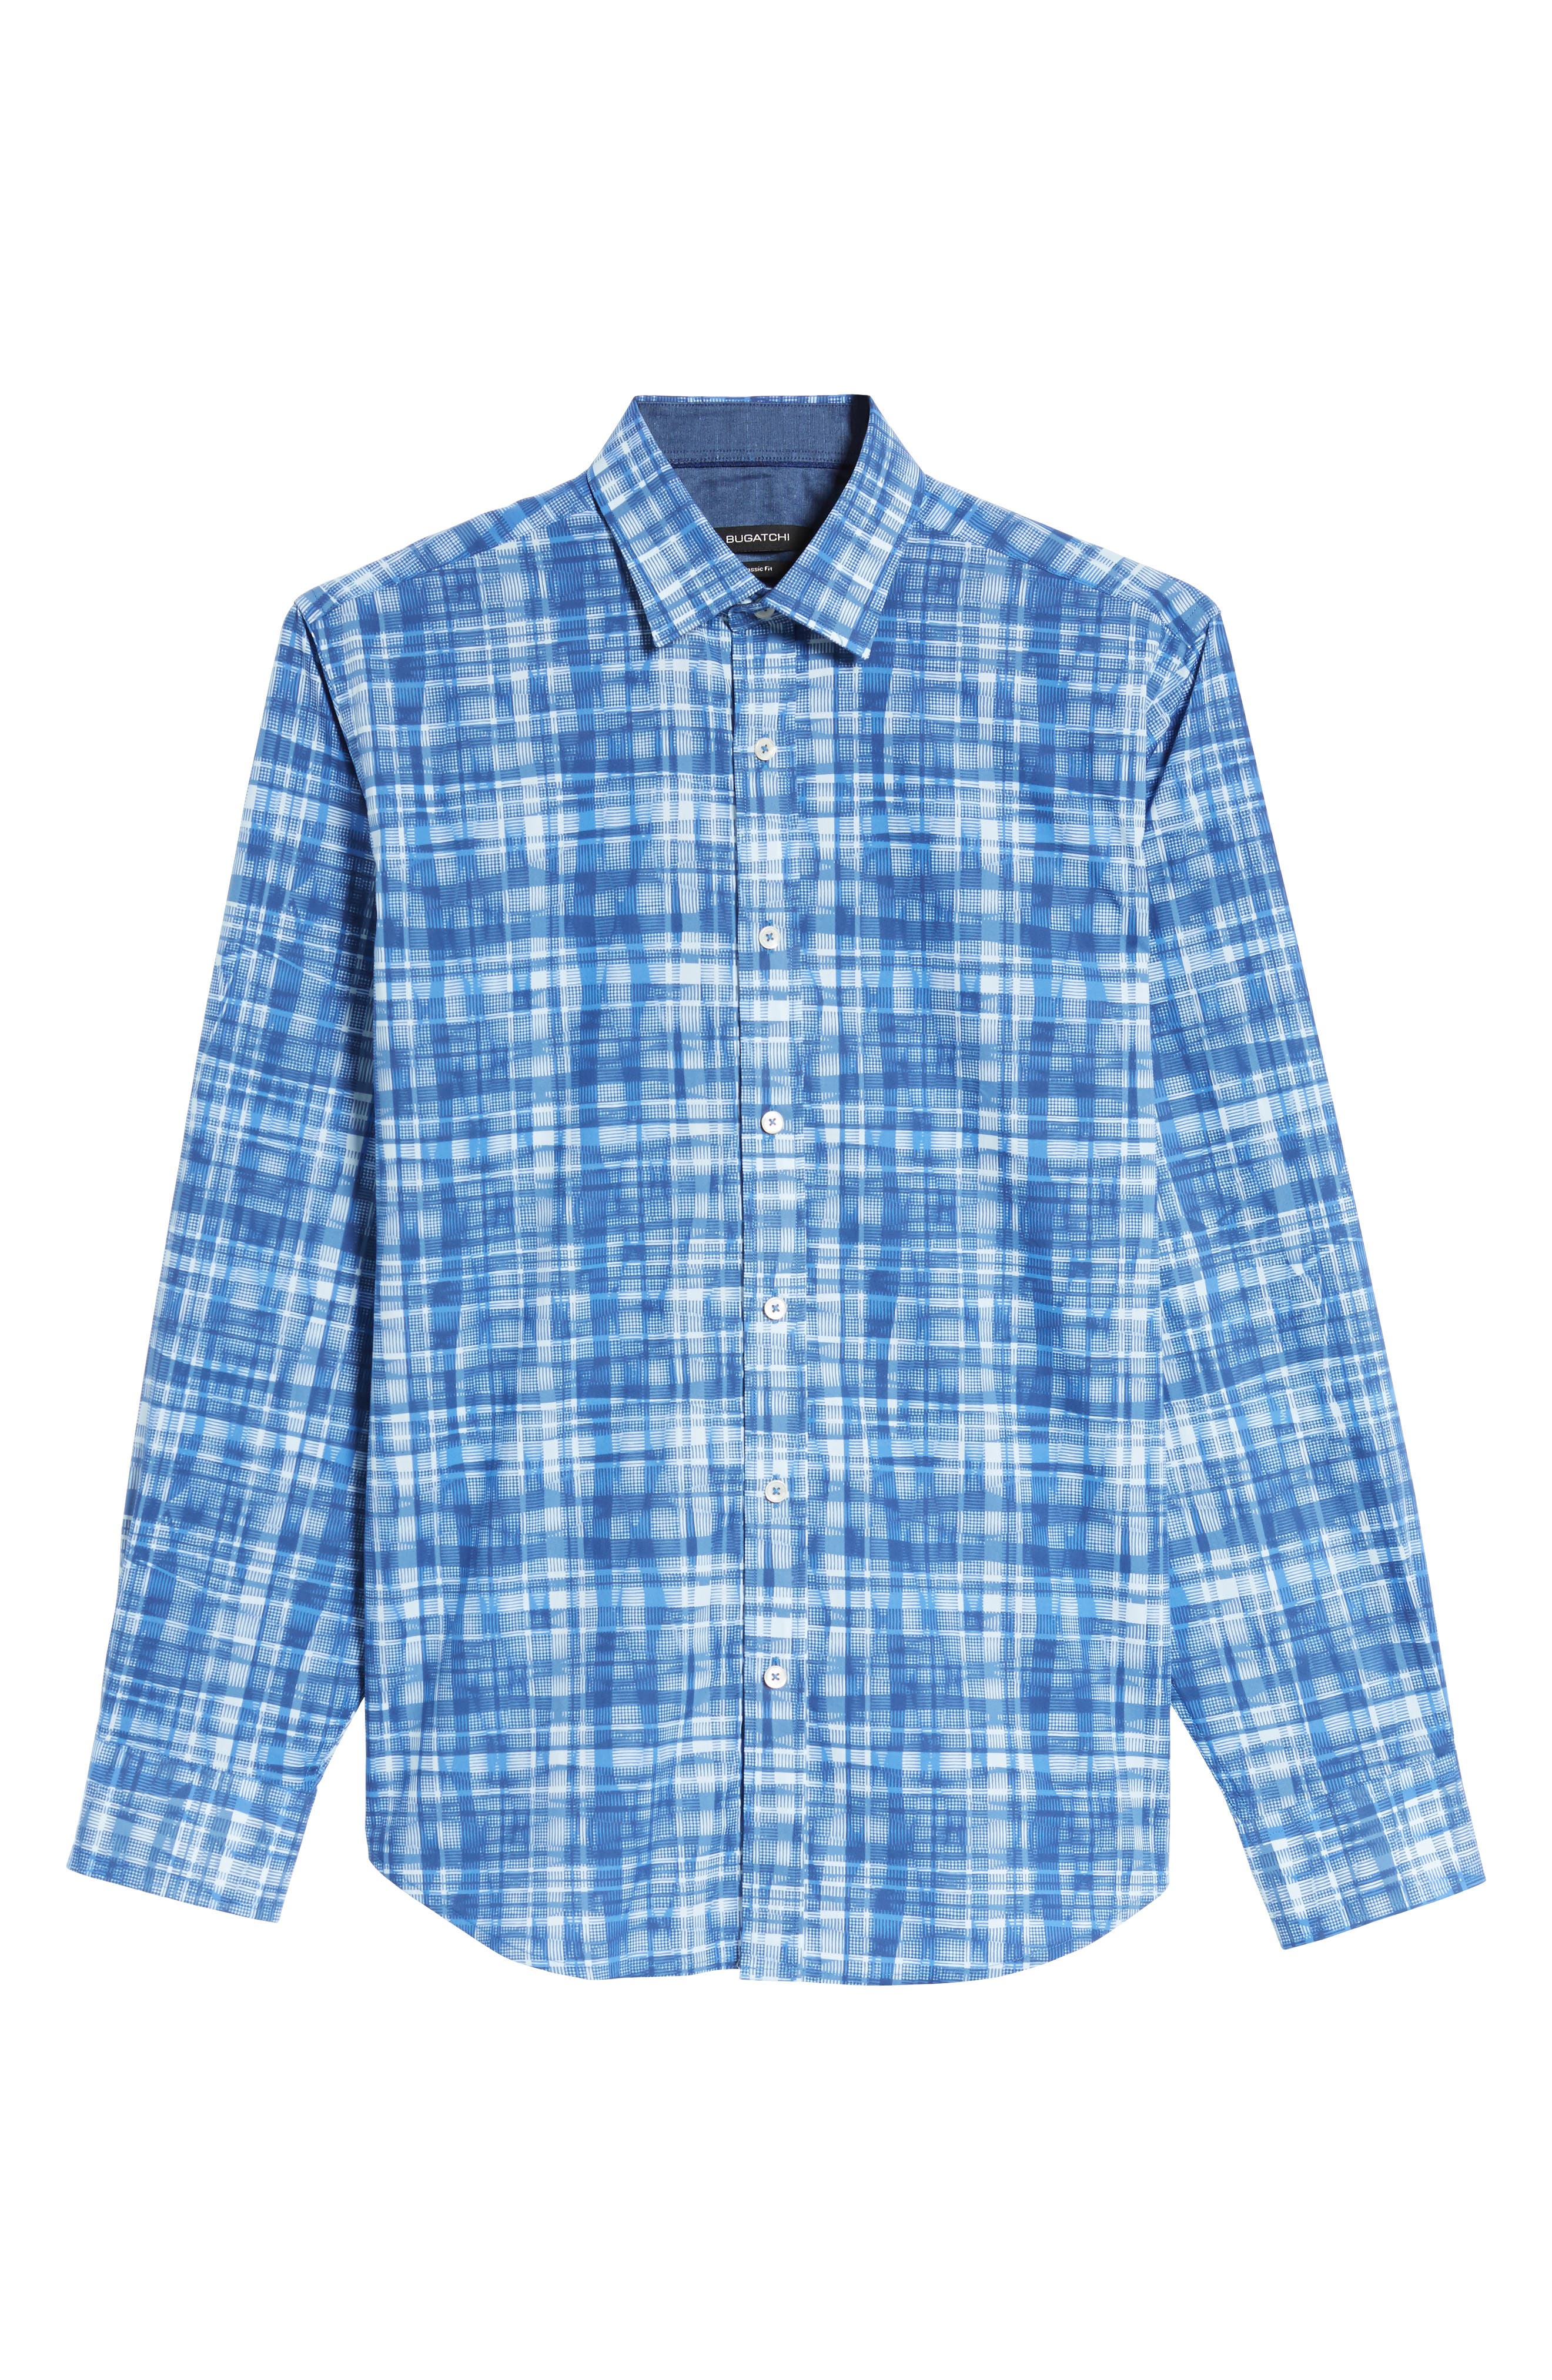 Classic Fit Abstract Plaid Sport Shirt,                             Alternate thumbnail 6, color,                             Classic Blue